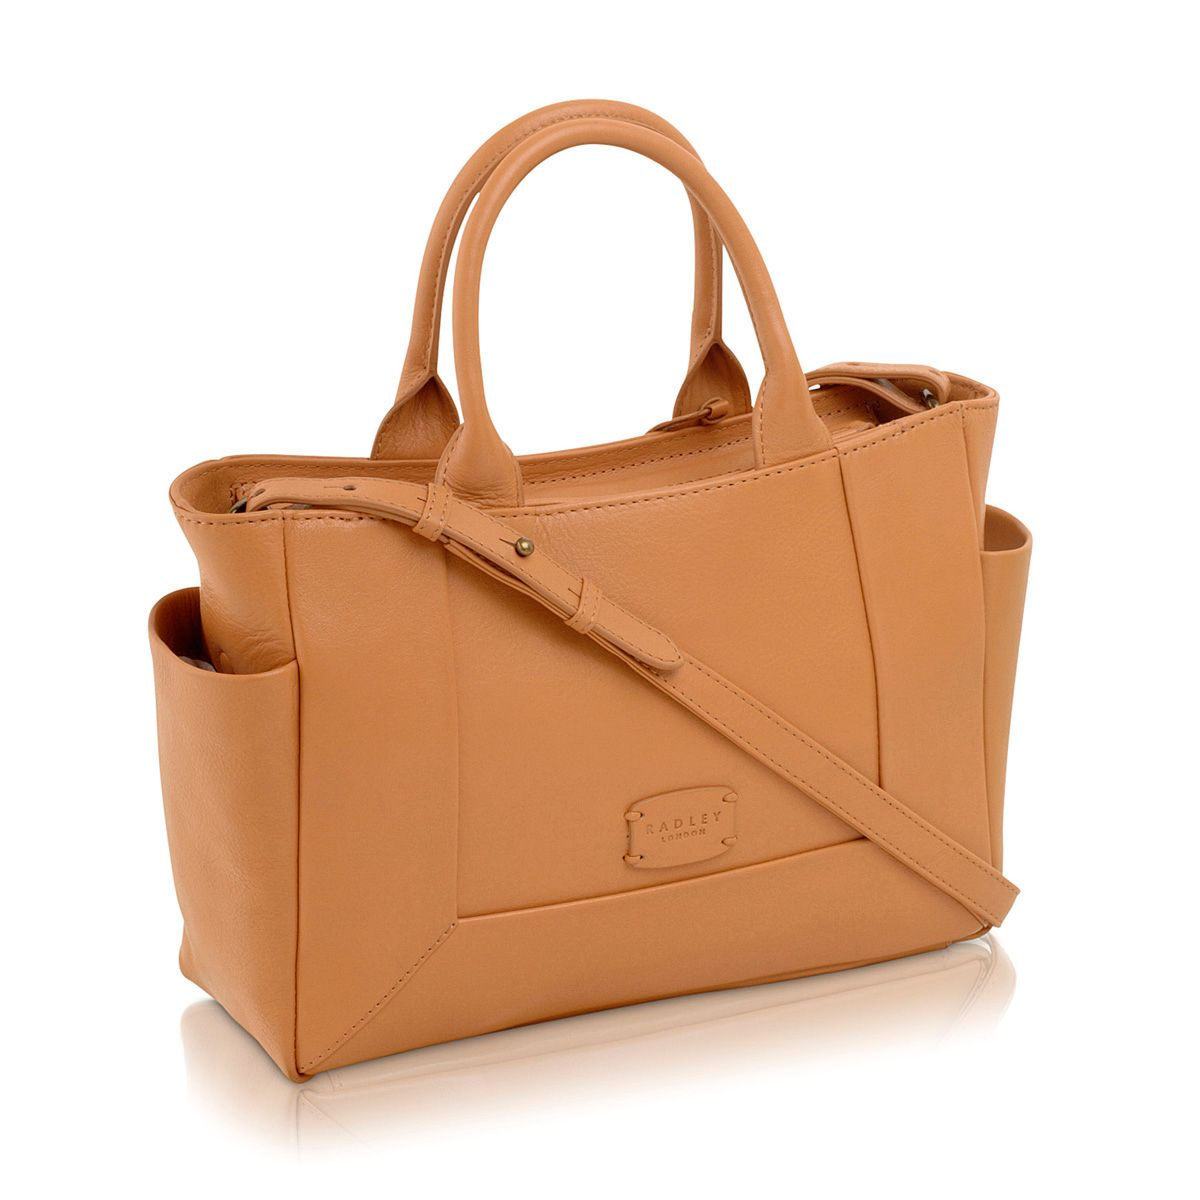 Tan medium cross body tote bag